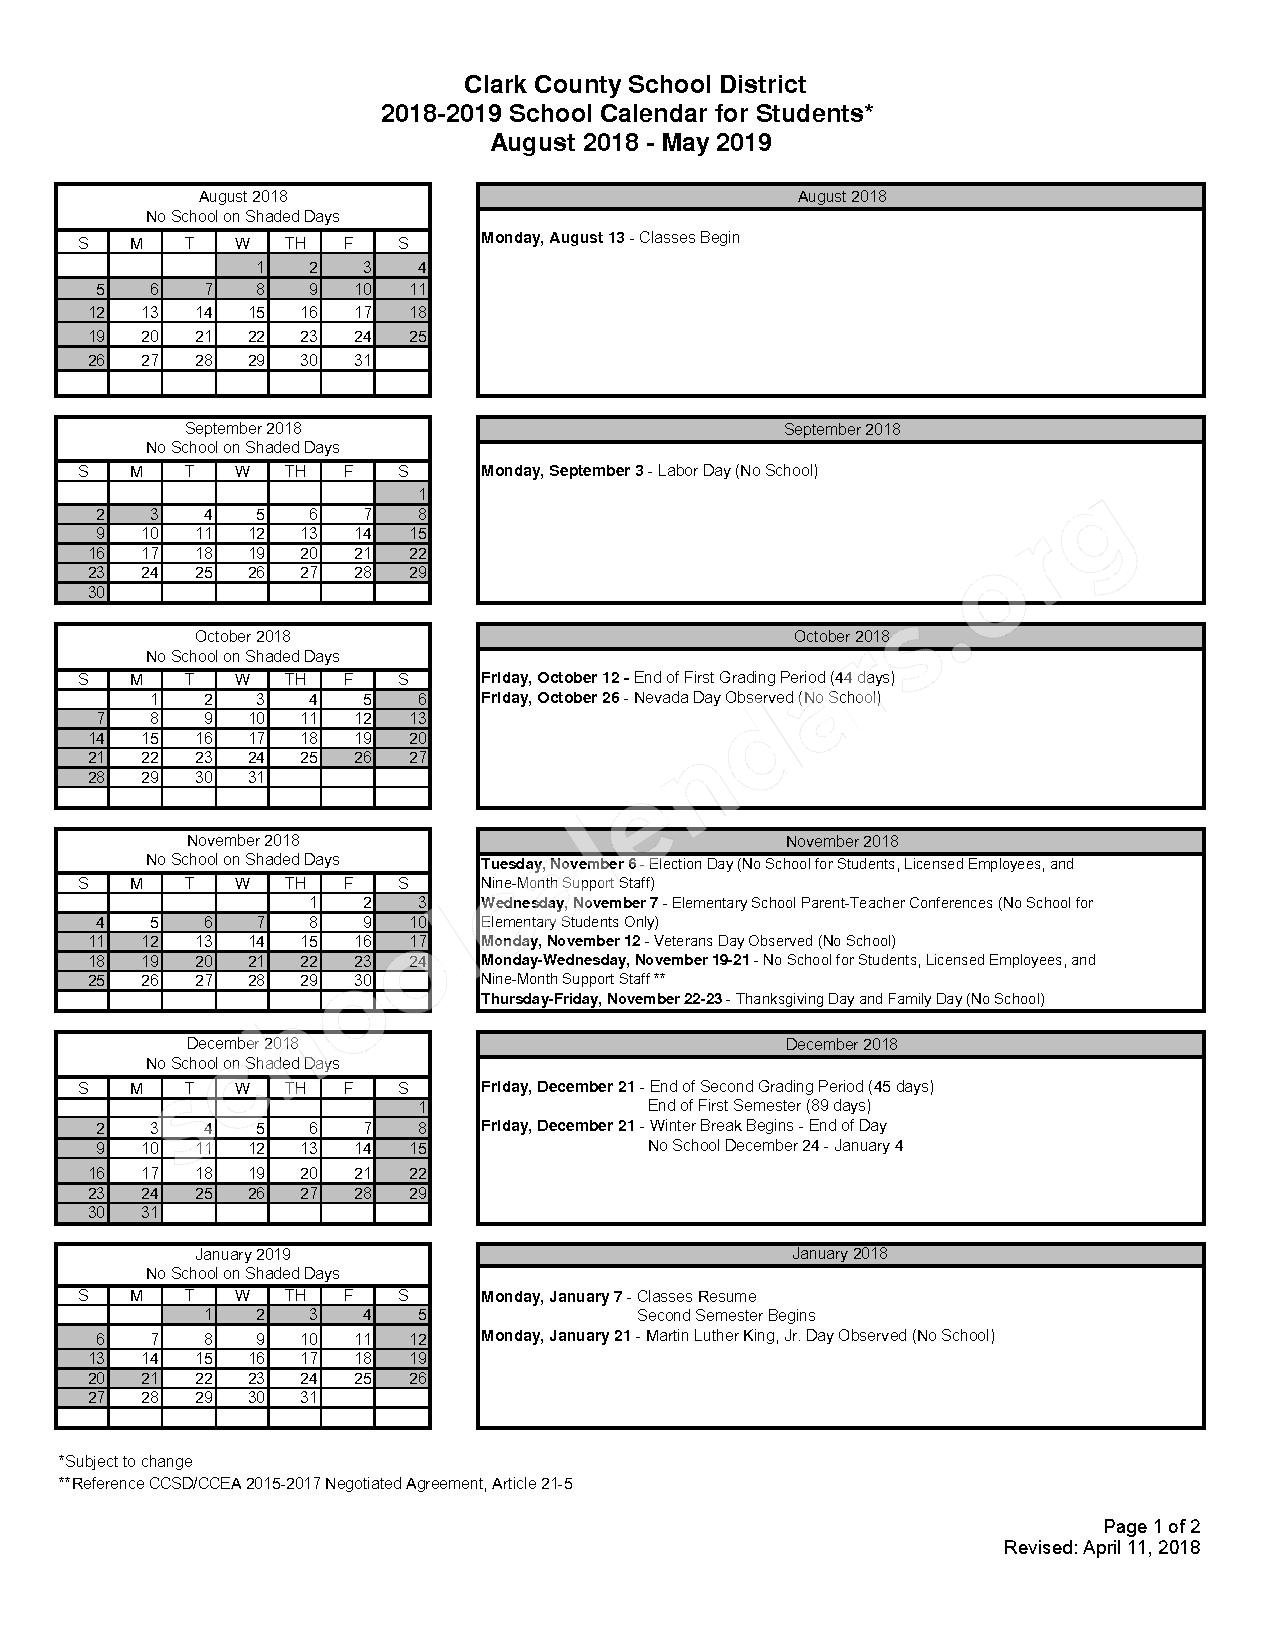 2018 - 2019 School Calendar for Students – Harley Harmon Elementary School – page 1